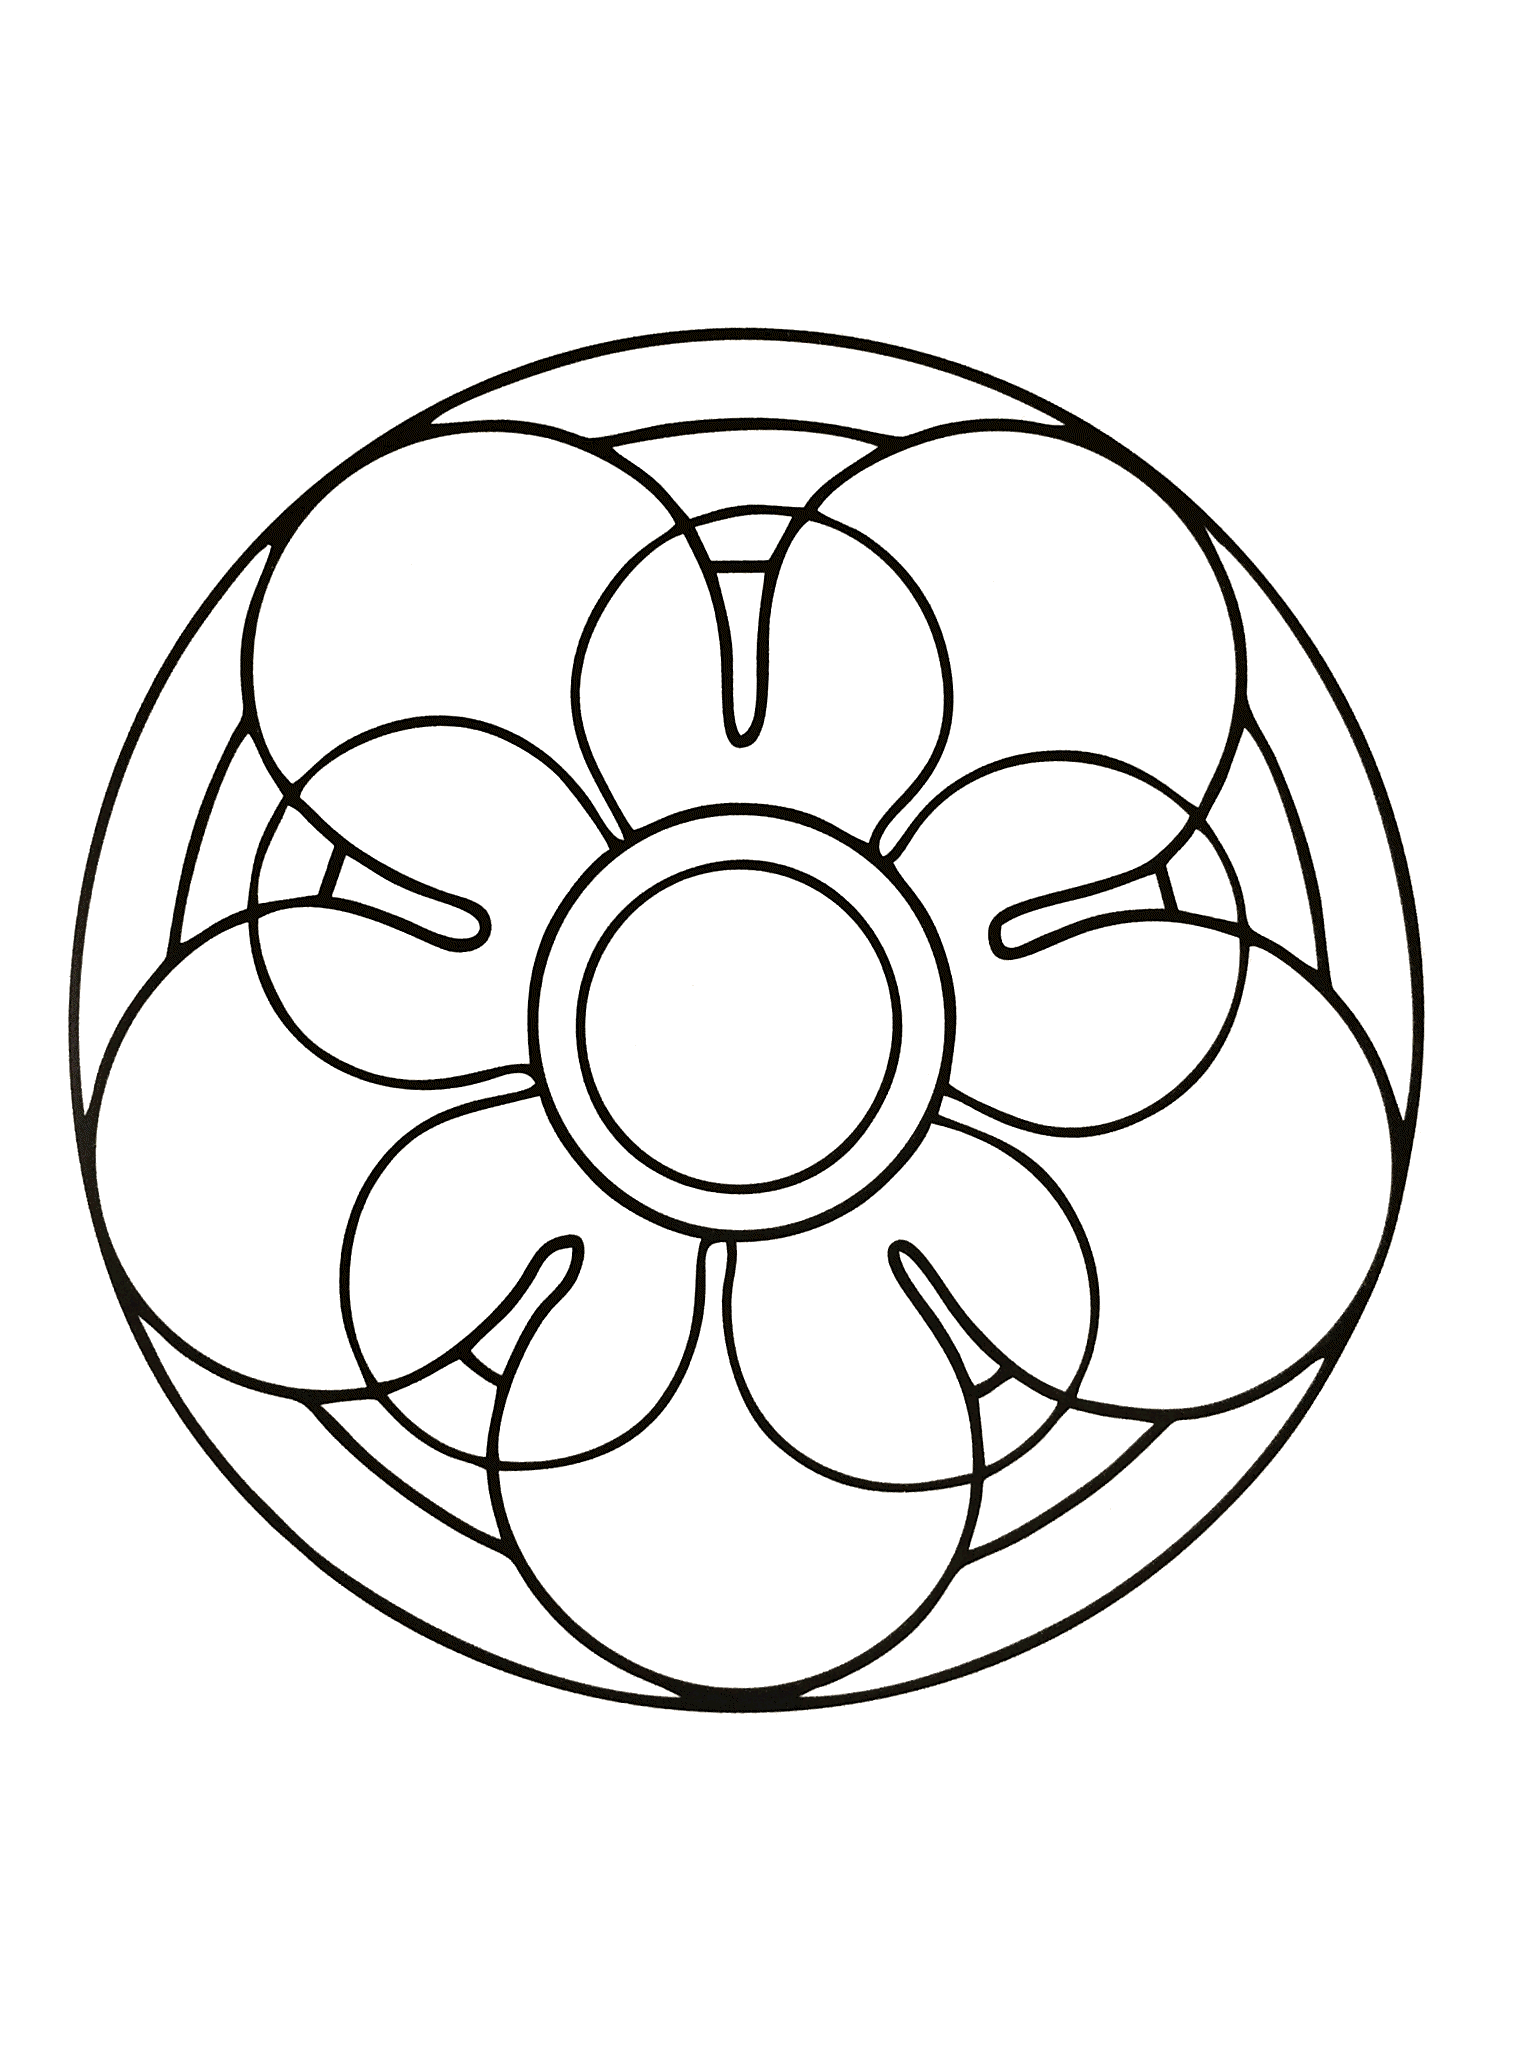 simple mandala 39 m alas coloring pages for kids to print color. Black Bedroom Furniture Sets. Home Design Ideas